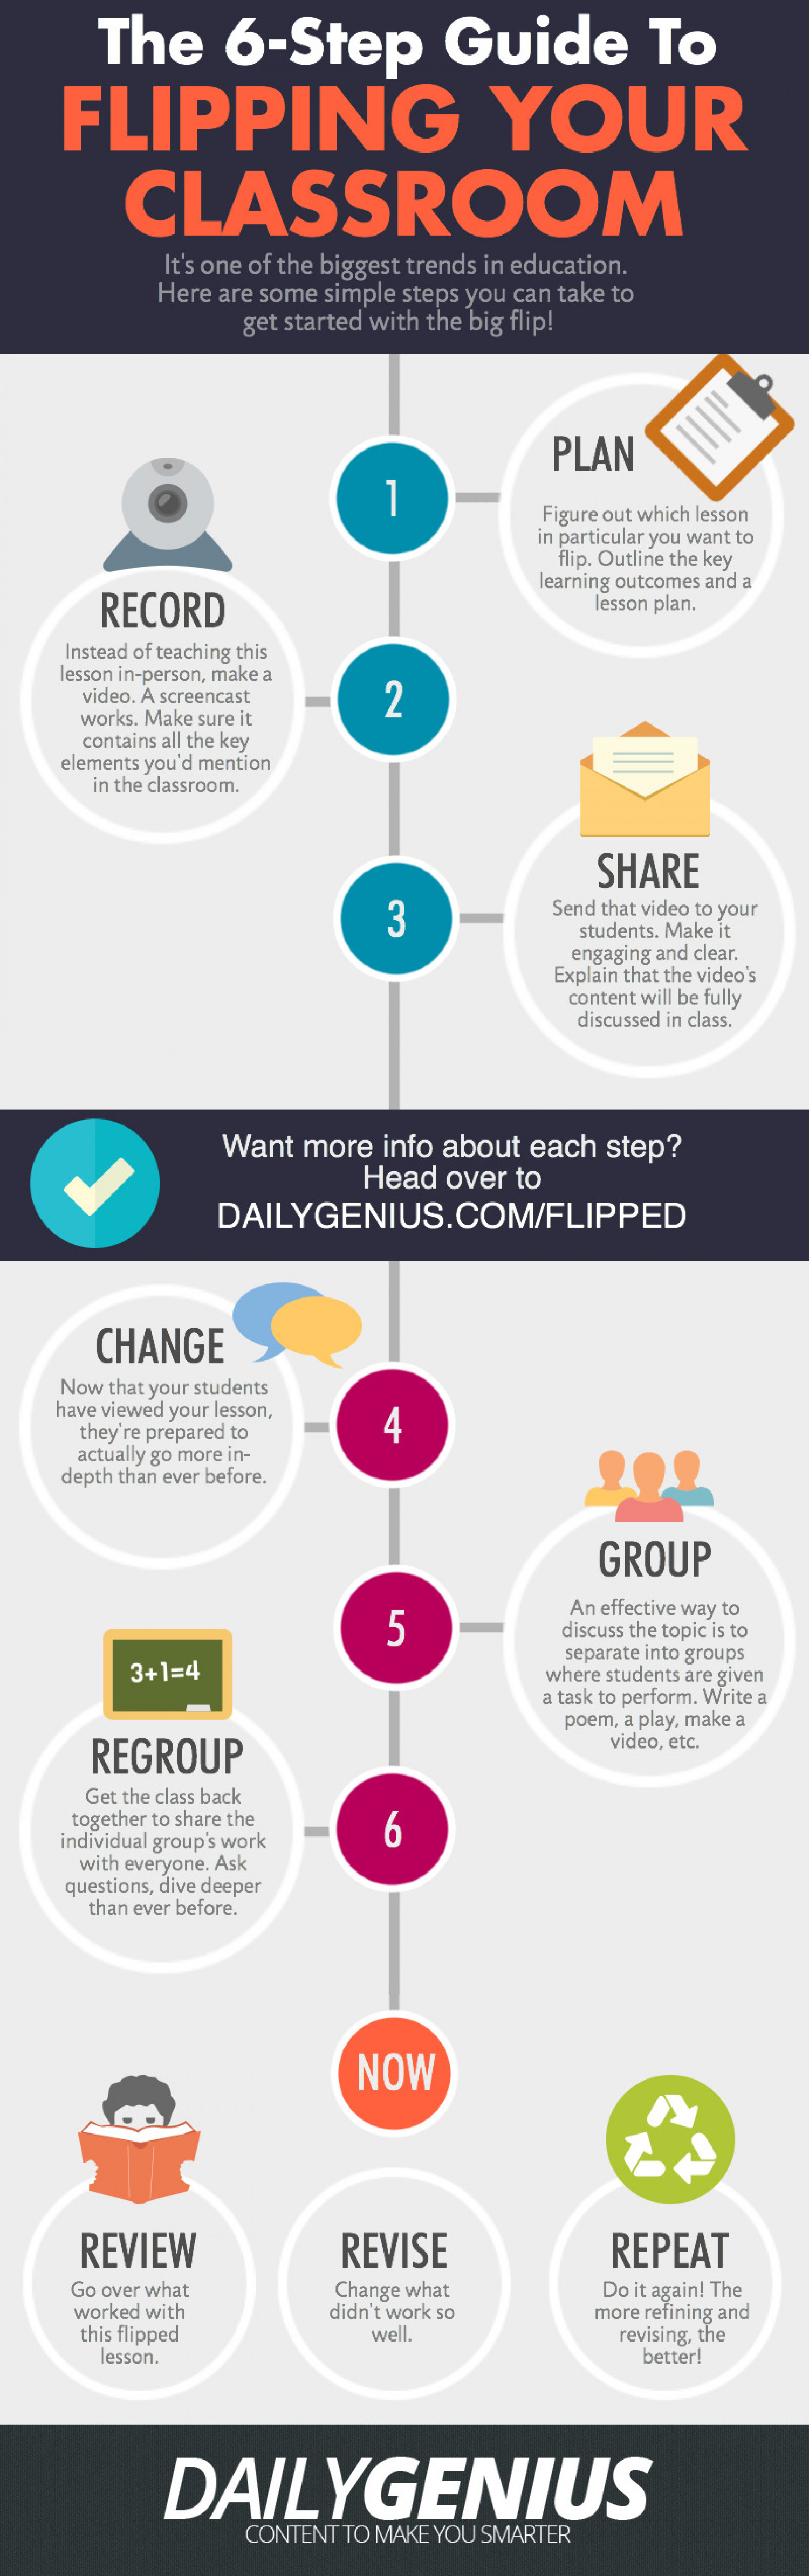 The 6-Step Guide To Flipping Your Classroom Infographic